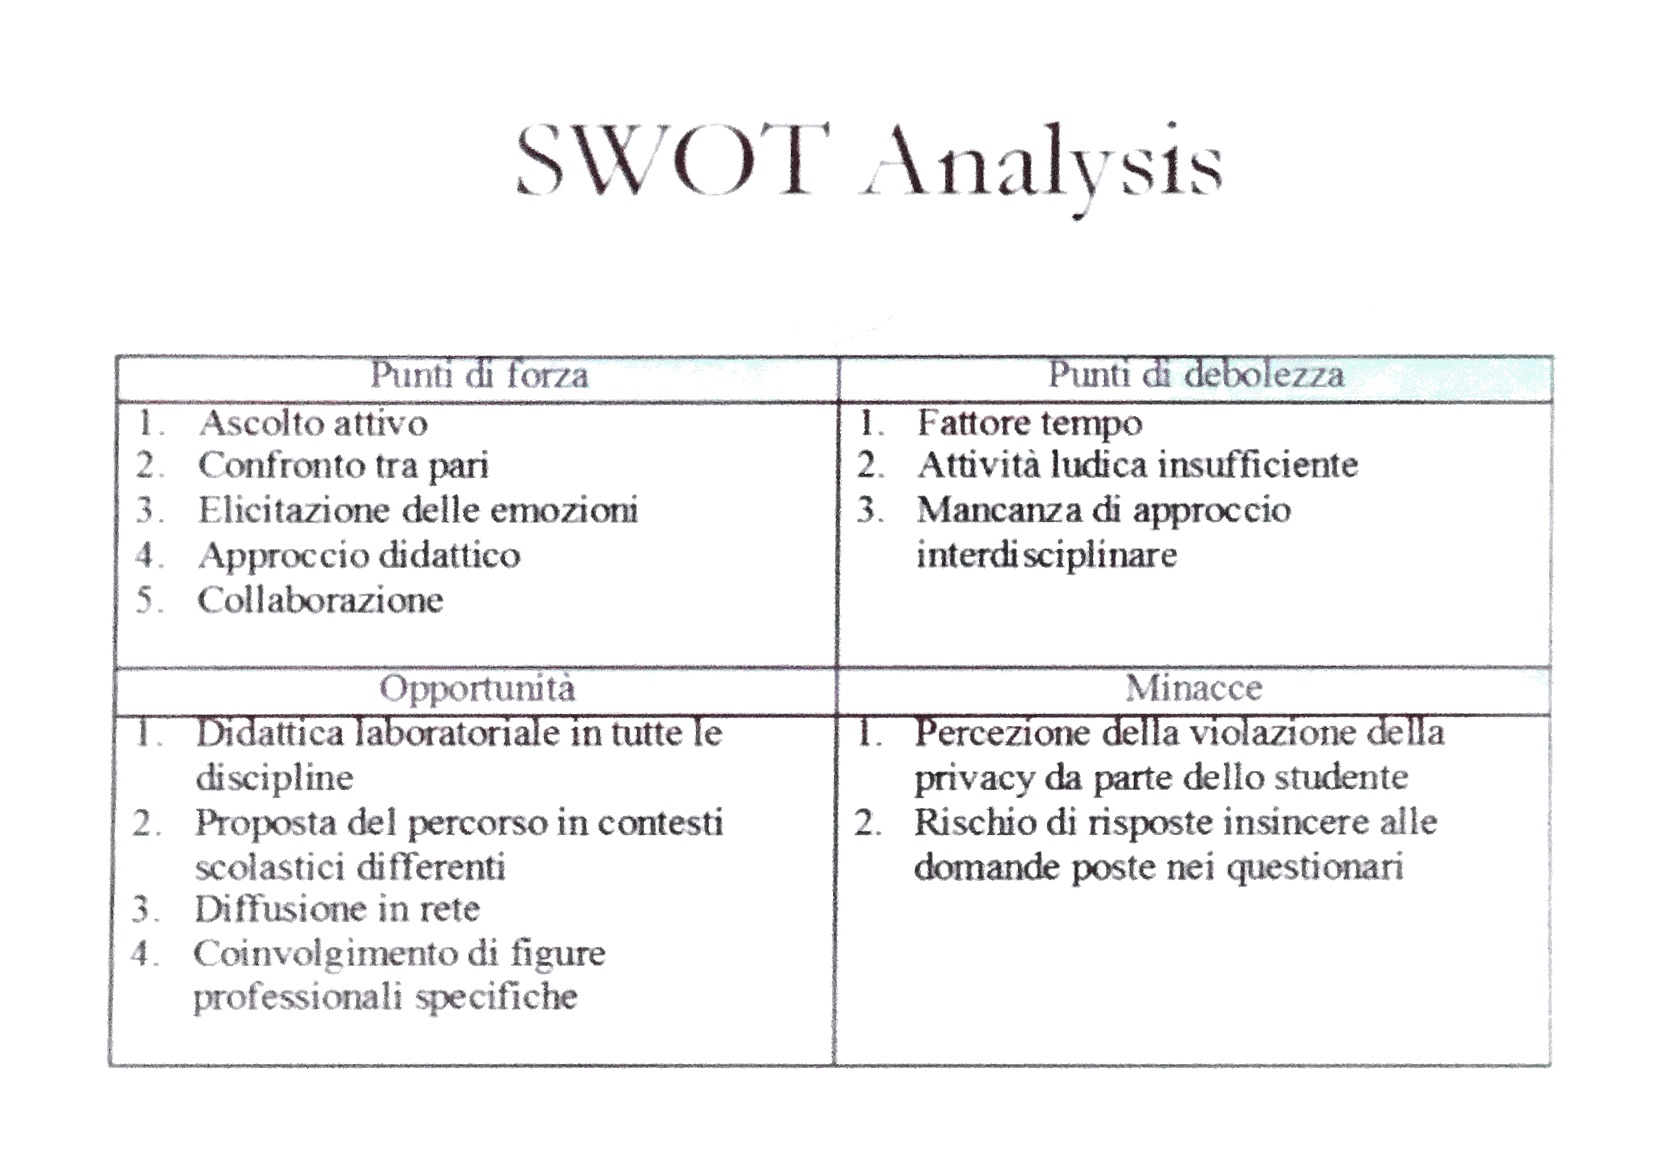 swot analysis for voltas This is mba case study on voltas ac by the team of iit kharagpur in which a comprehensive situational analysis has been carried out detailing strengths.